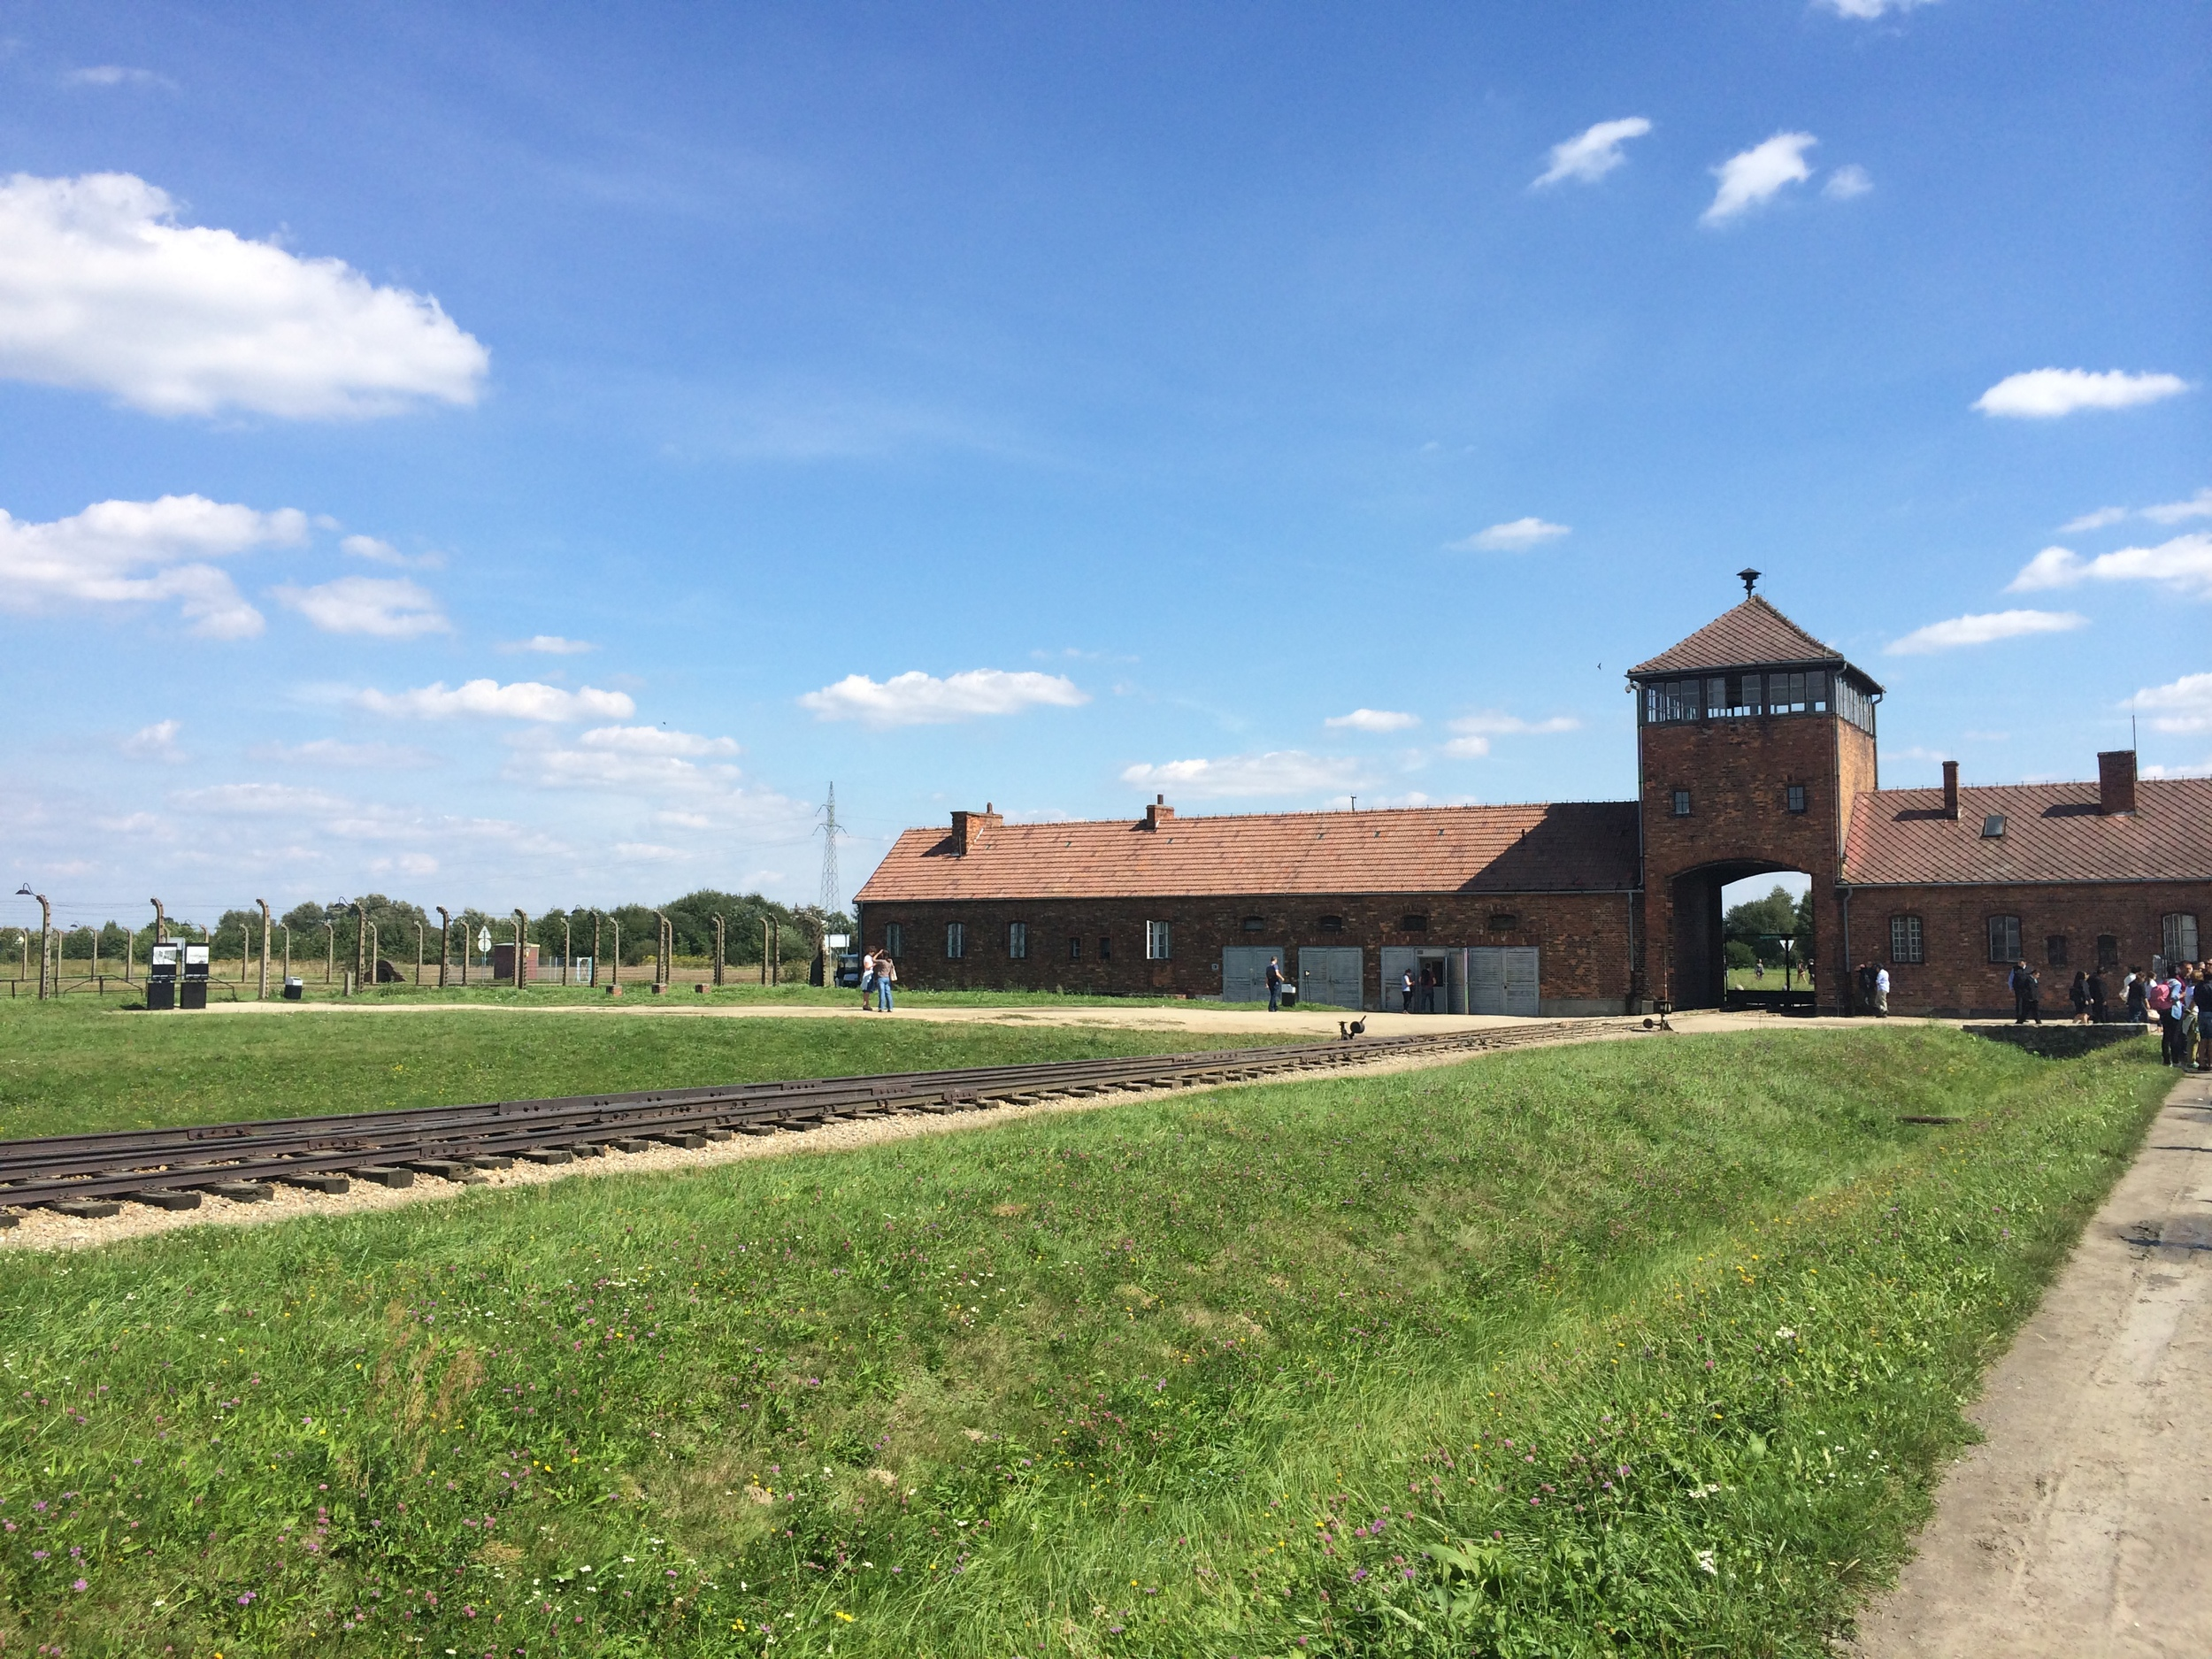 The iconic entrance to Auschwitz II - Birkenau.